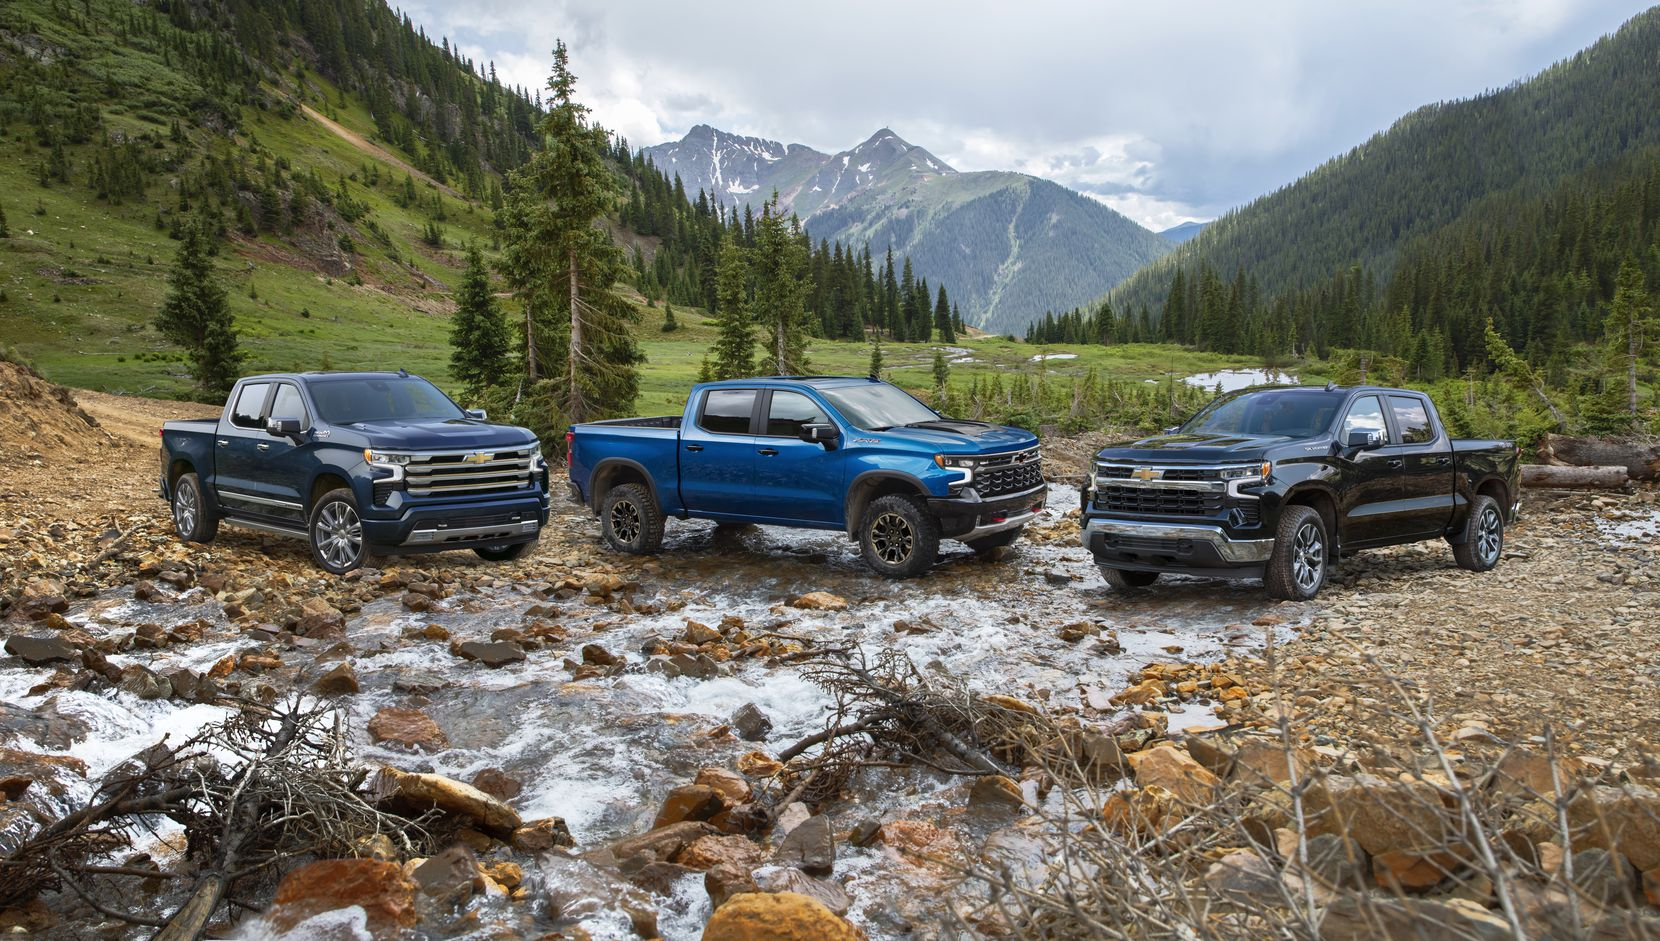 The 2022 Chevrolet Silverado High Country (left), ZR2 and LT models.